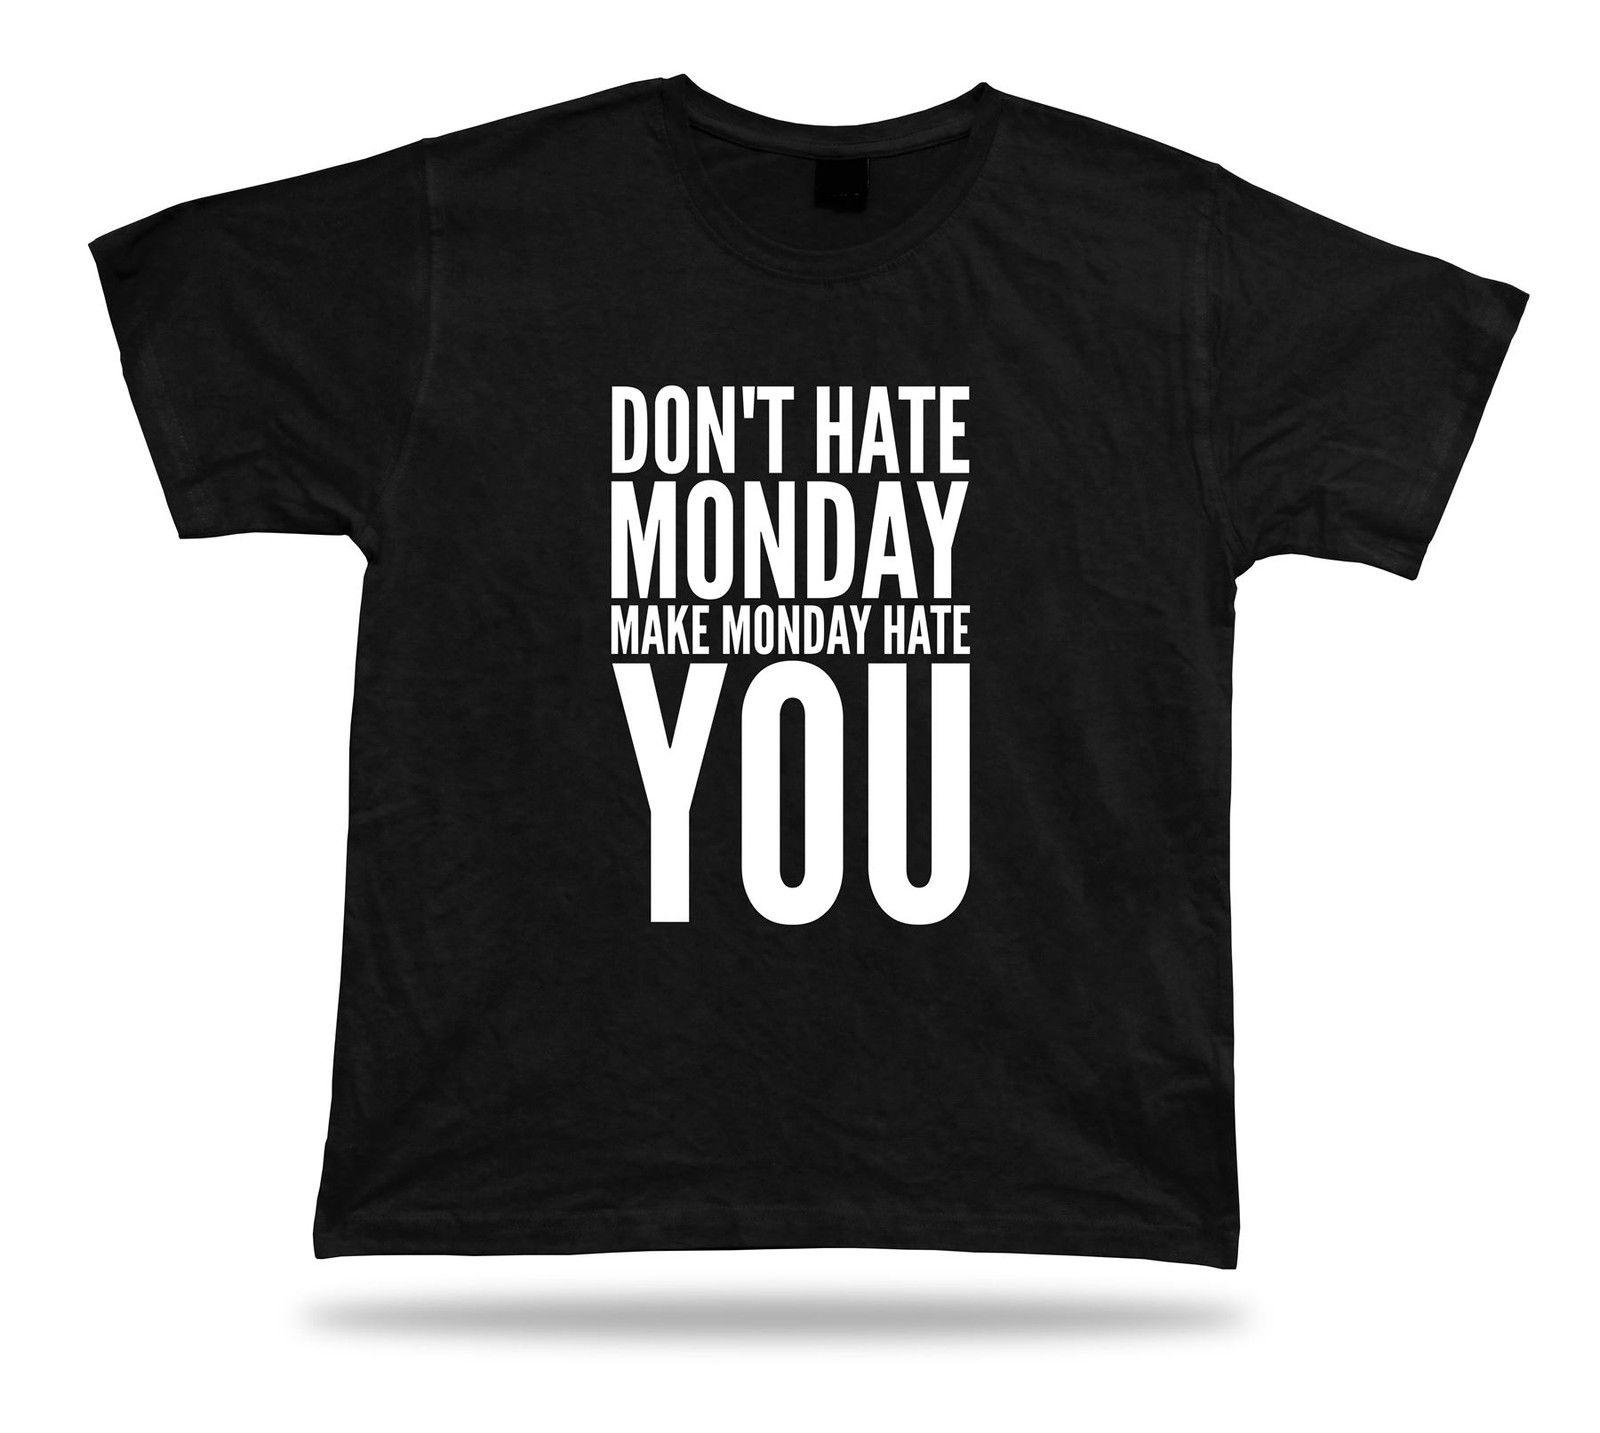 Tshirt Tee Shirt Birthday Gift Idea Funny Quote Monday Hate Work